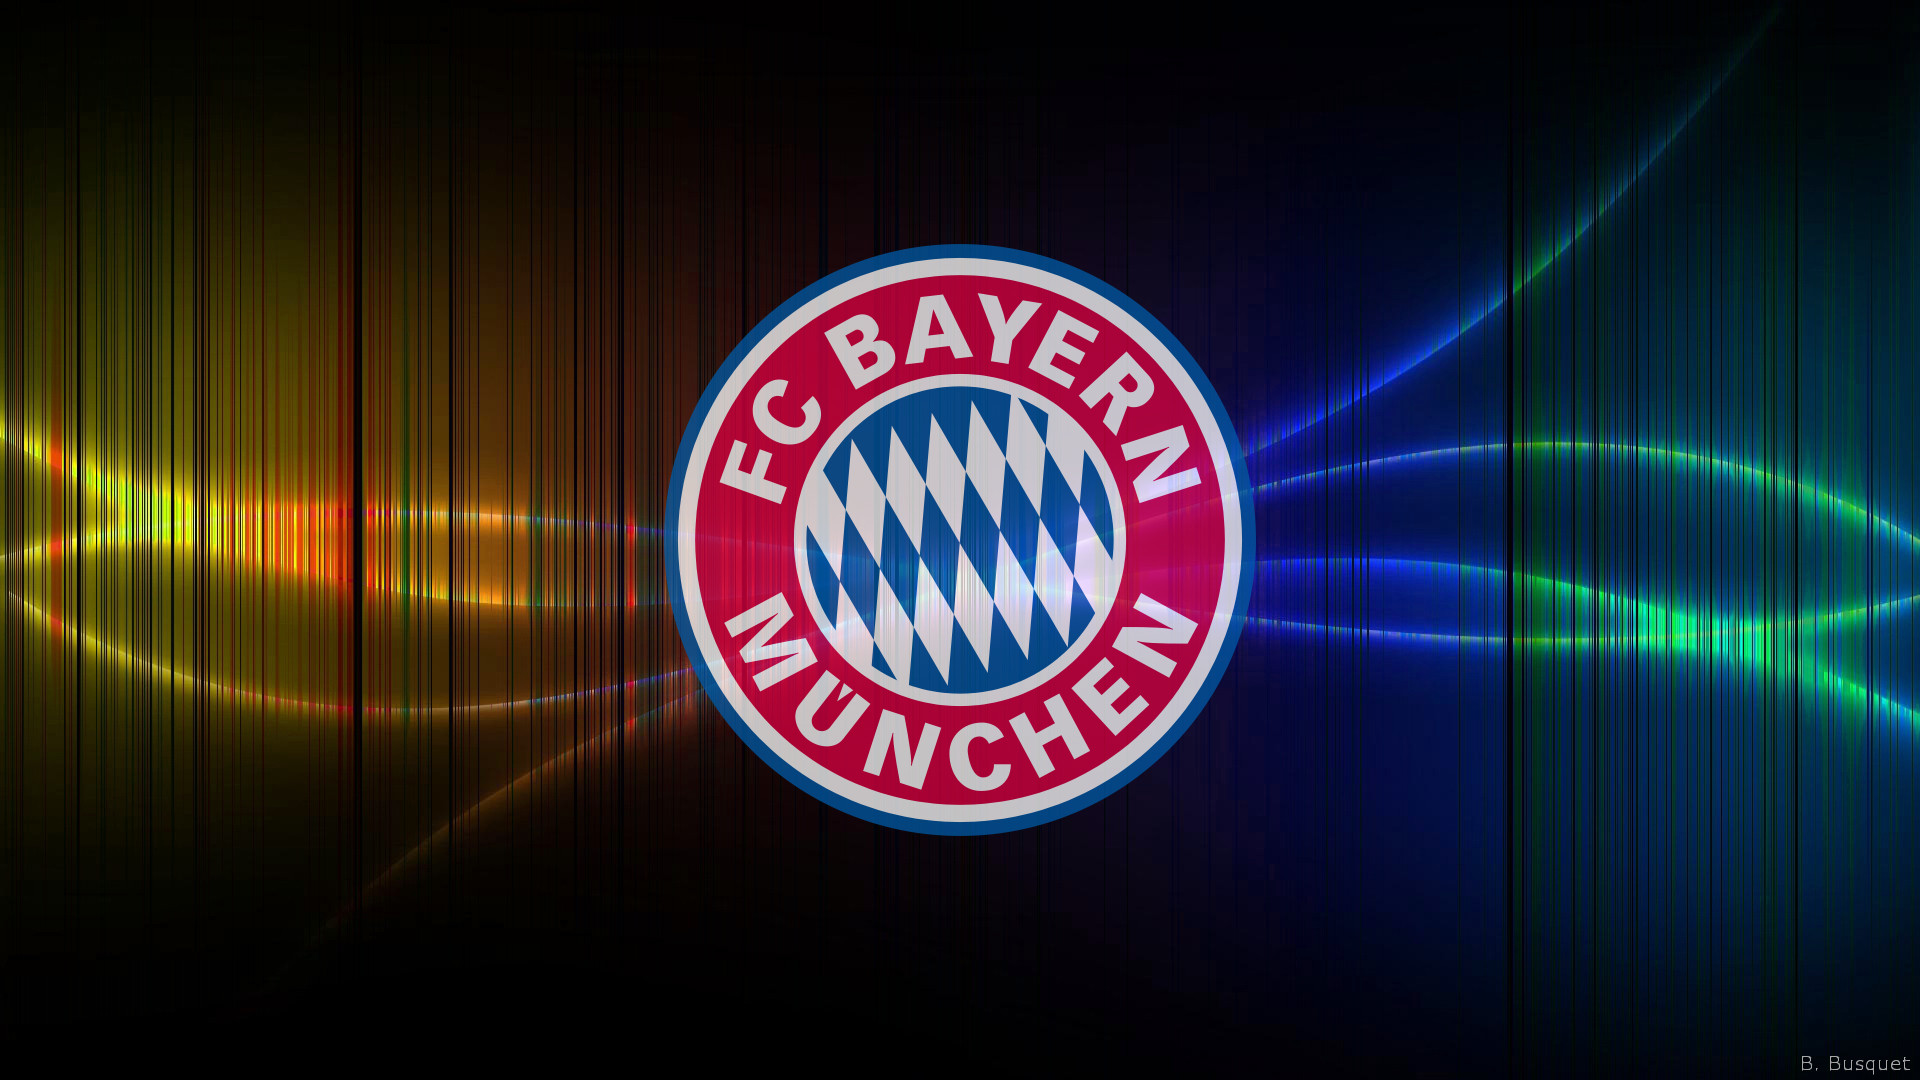 Fc bayern munchen wallpapers barbaras hd wallpapers fc bayern munchen football wallpaper vertical lines voltagebd